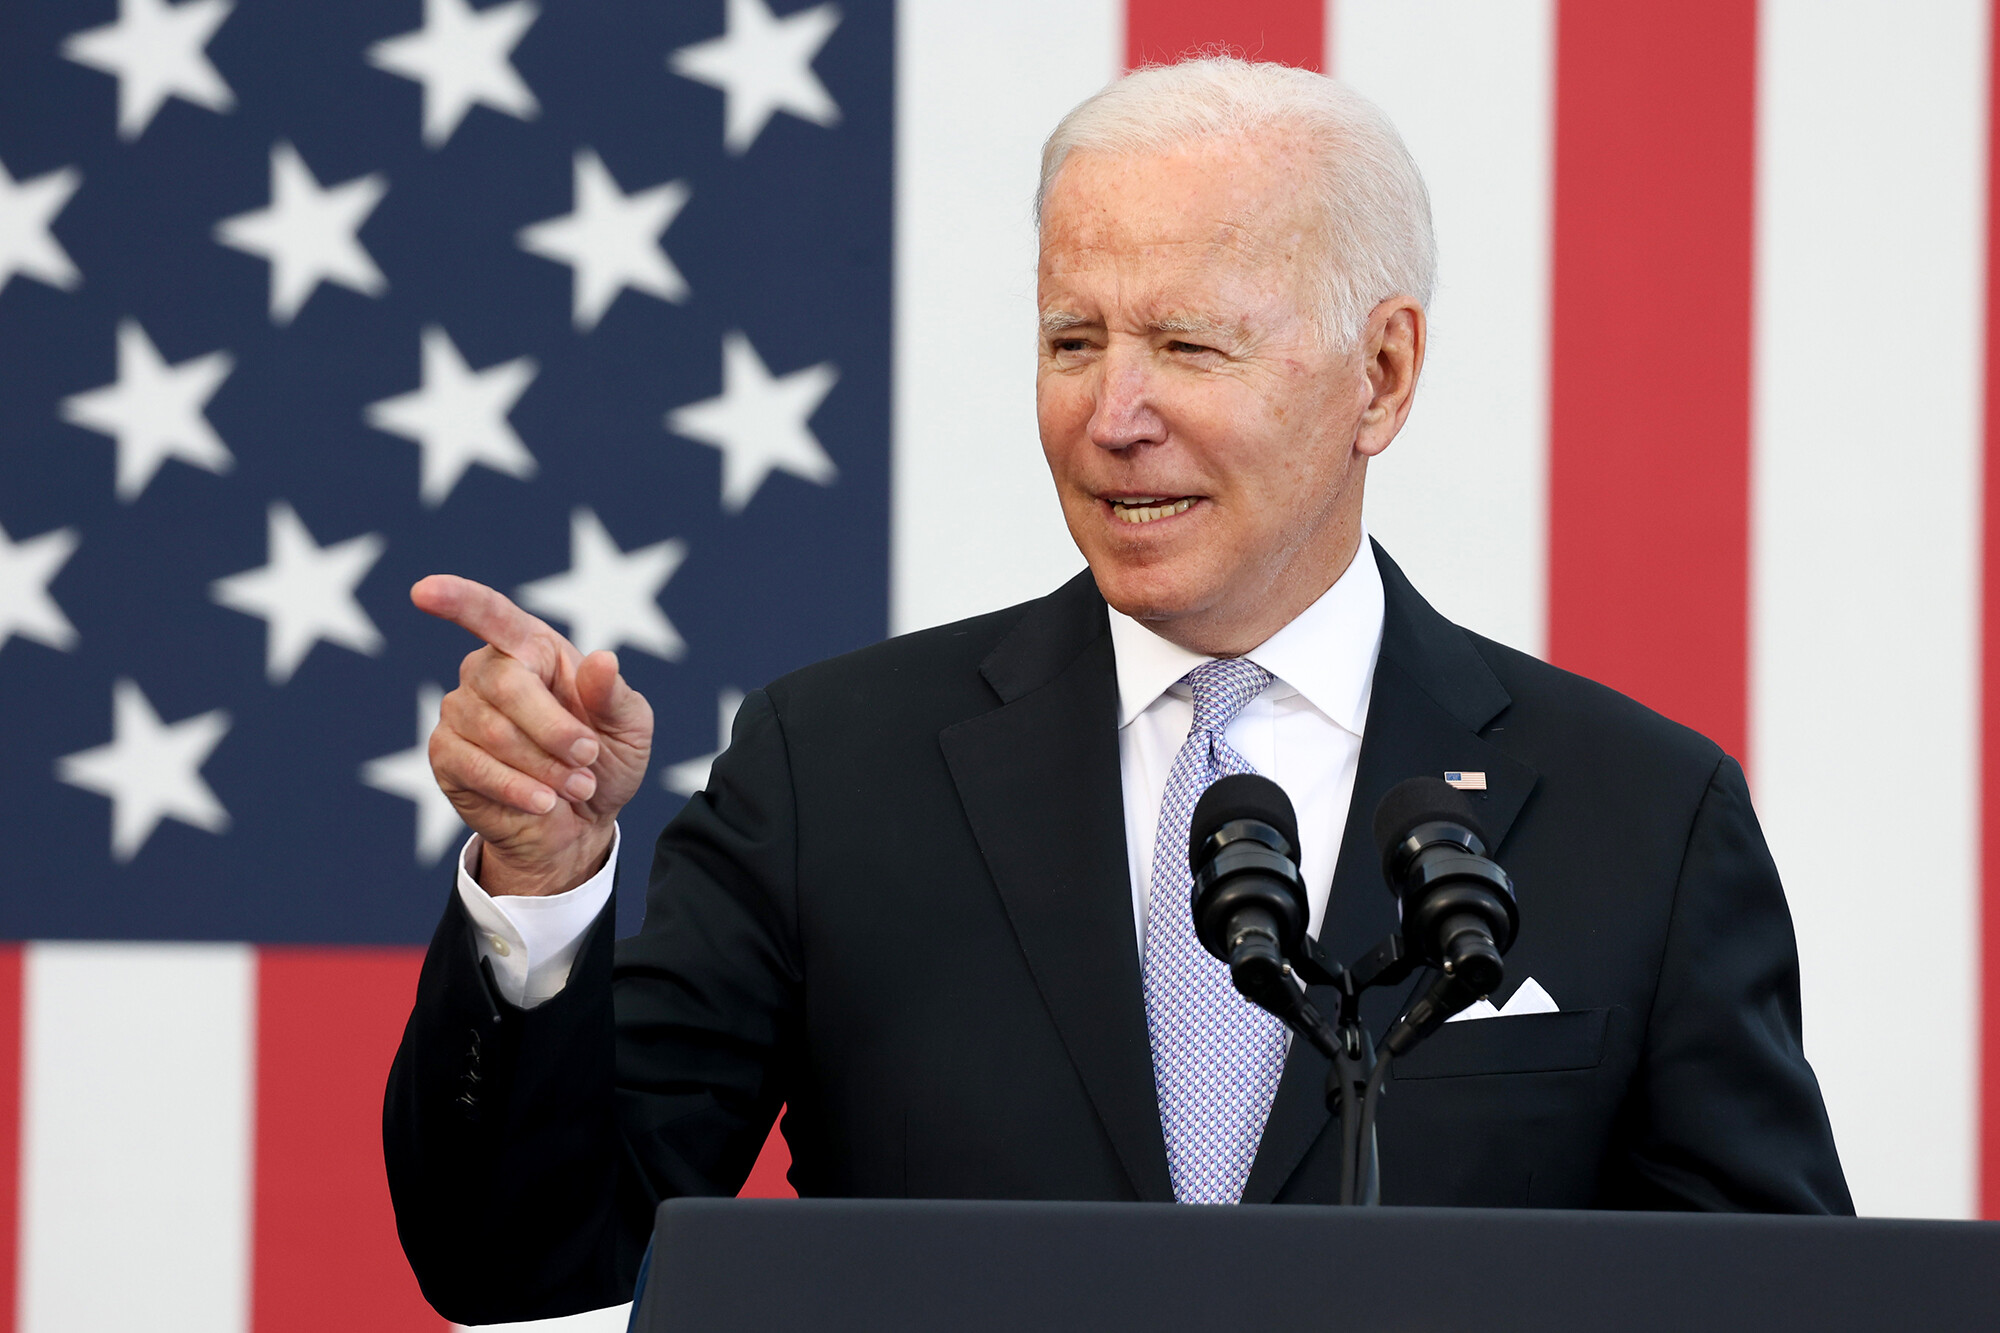 Biden pitching spending plans in New Jersey ahead of key week for Hill negotiations